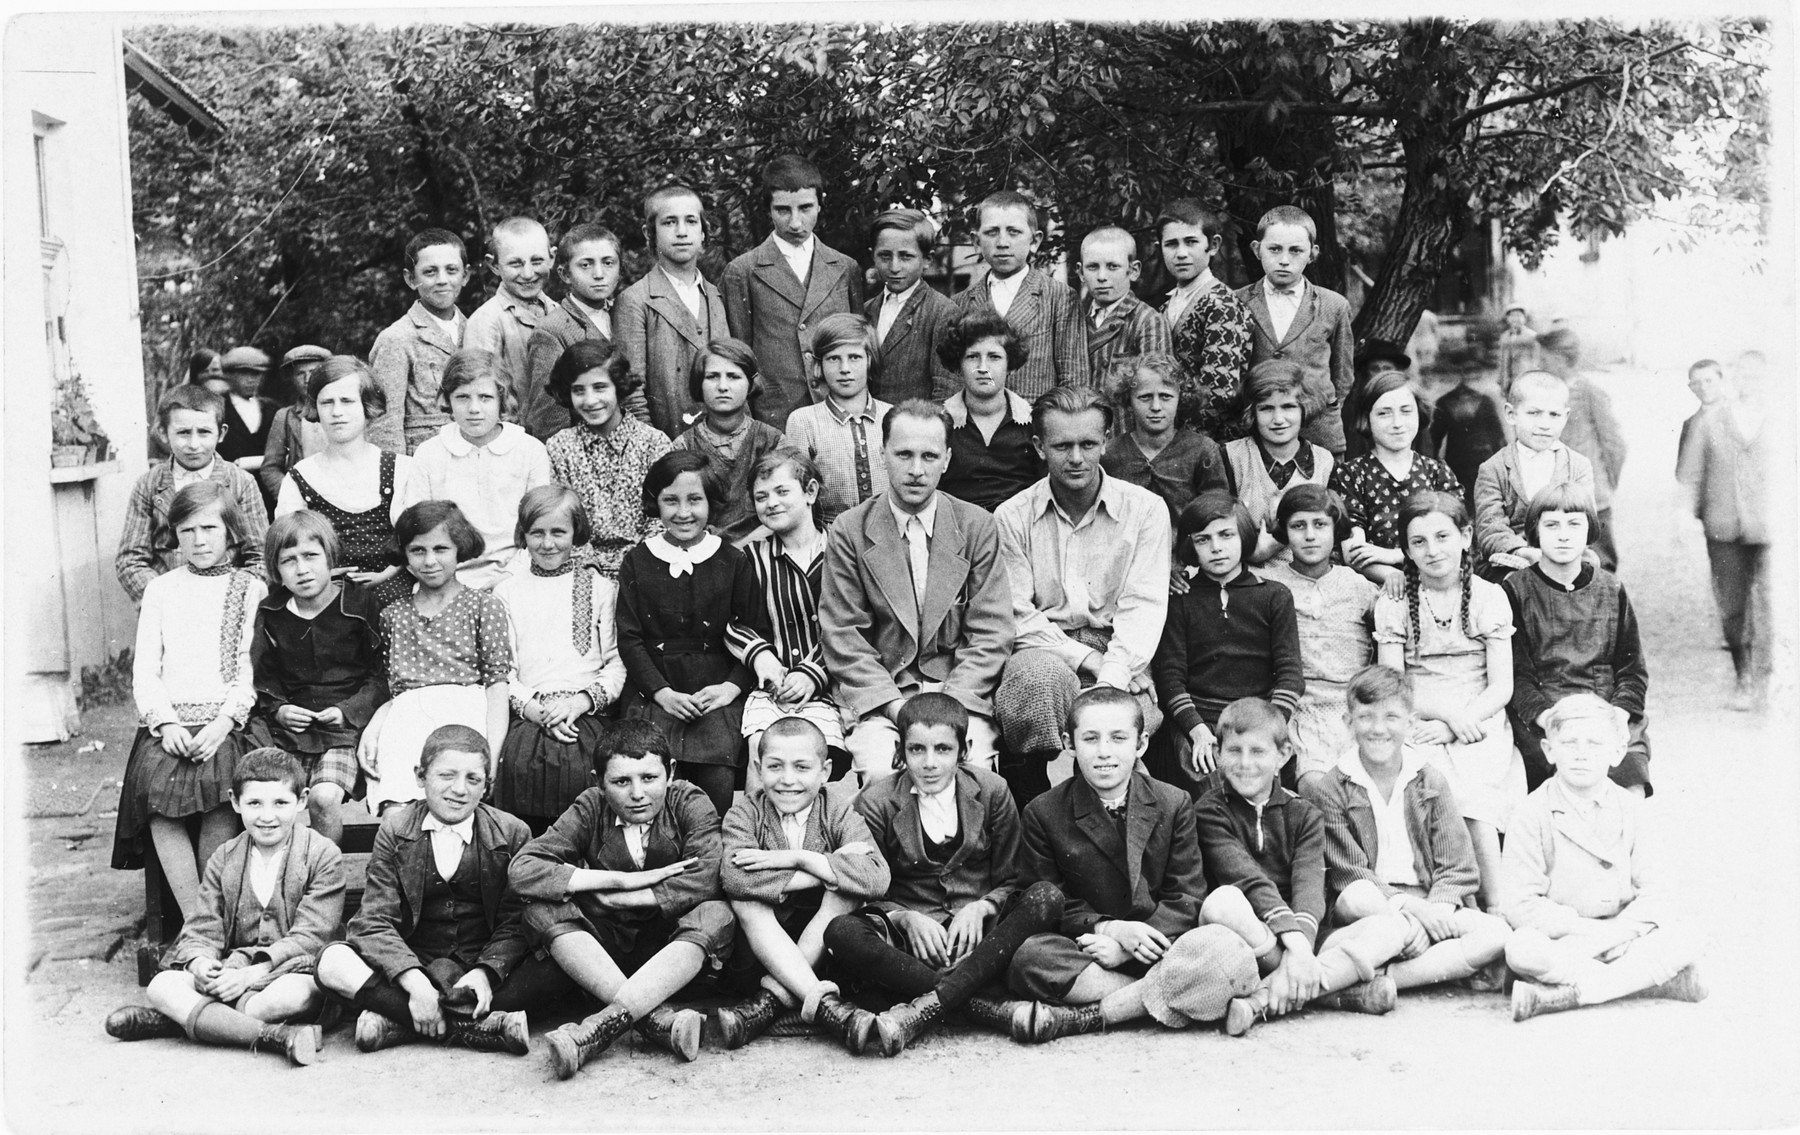 Group portrait of students and teachers at a public school in Tacovo.  Among those pictured is Goldie Berger (second row from the front, fourth from the right).